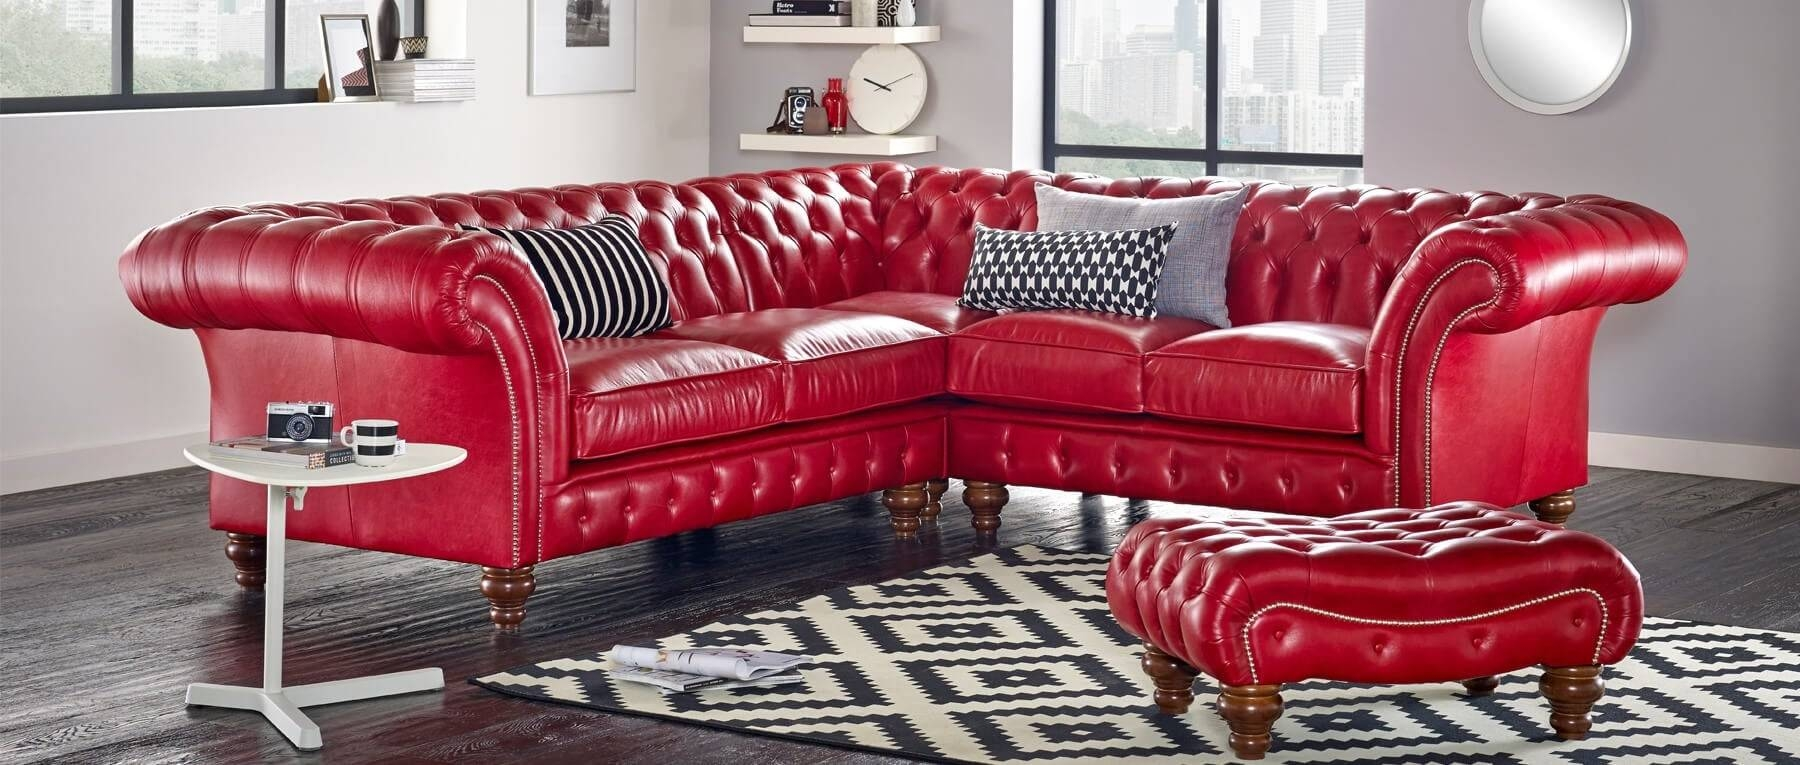 Bespoke Chesterfield Furniture Handmade In Britain | Sofassaxon regarding Red Chesterfield Sofas (Image 1 of 15)